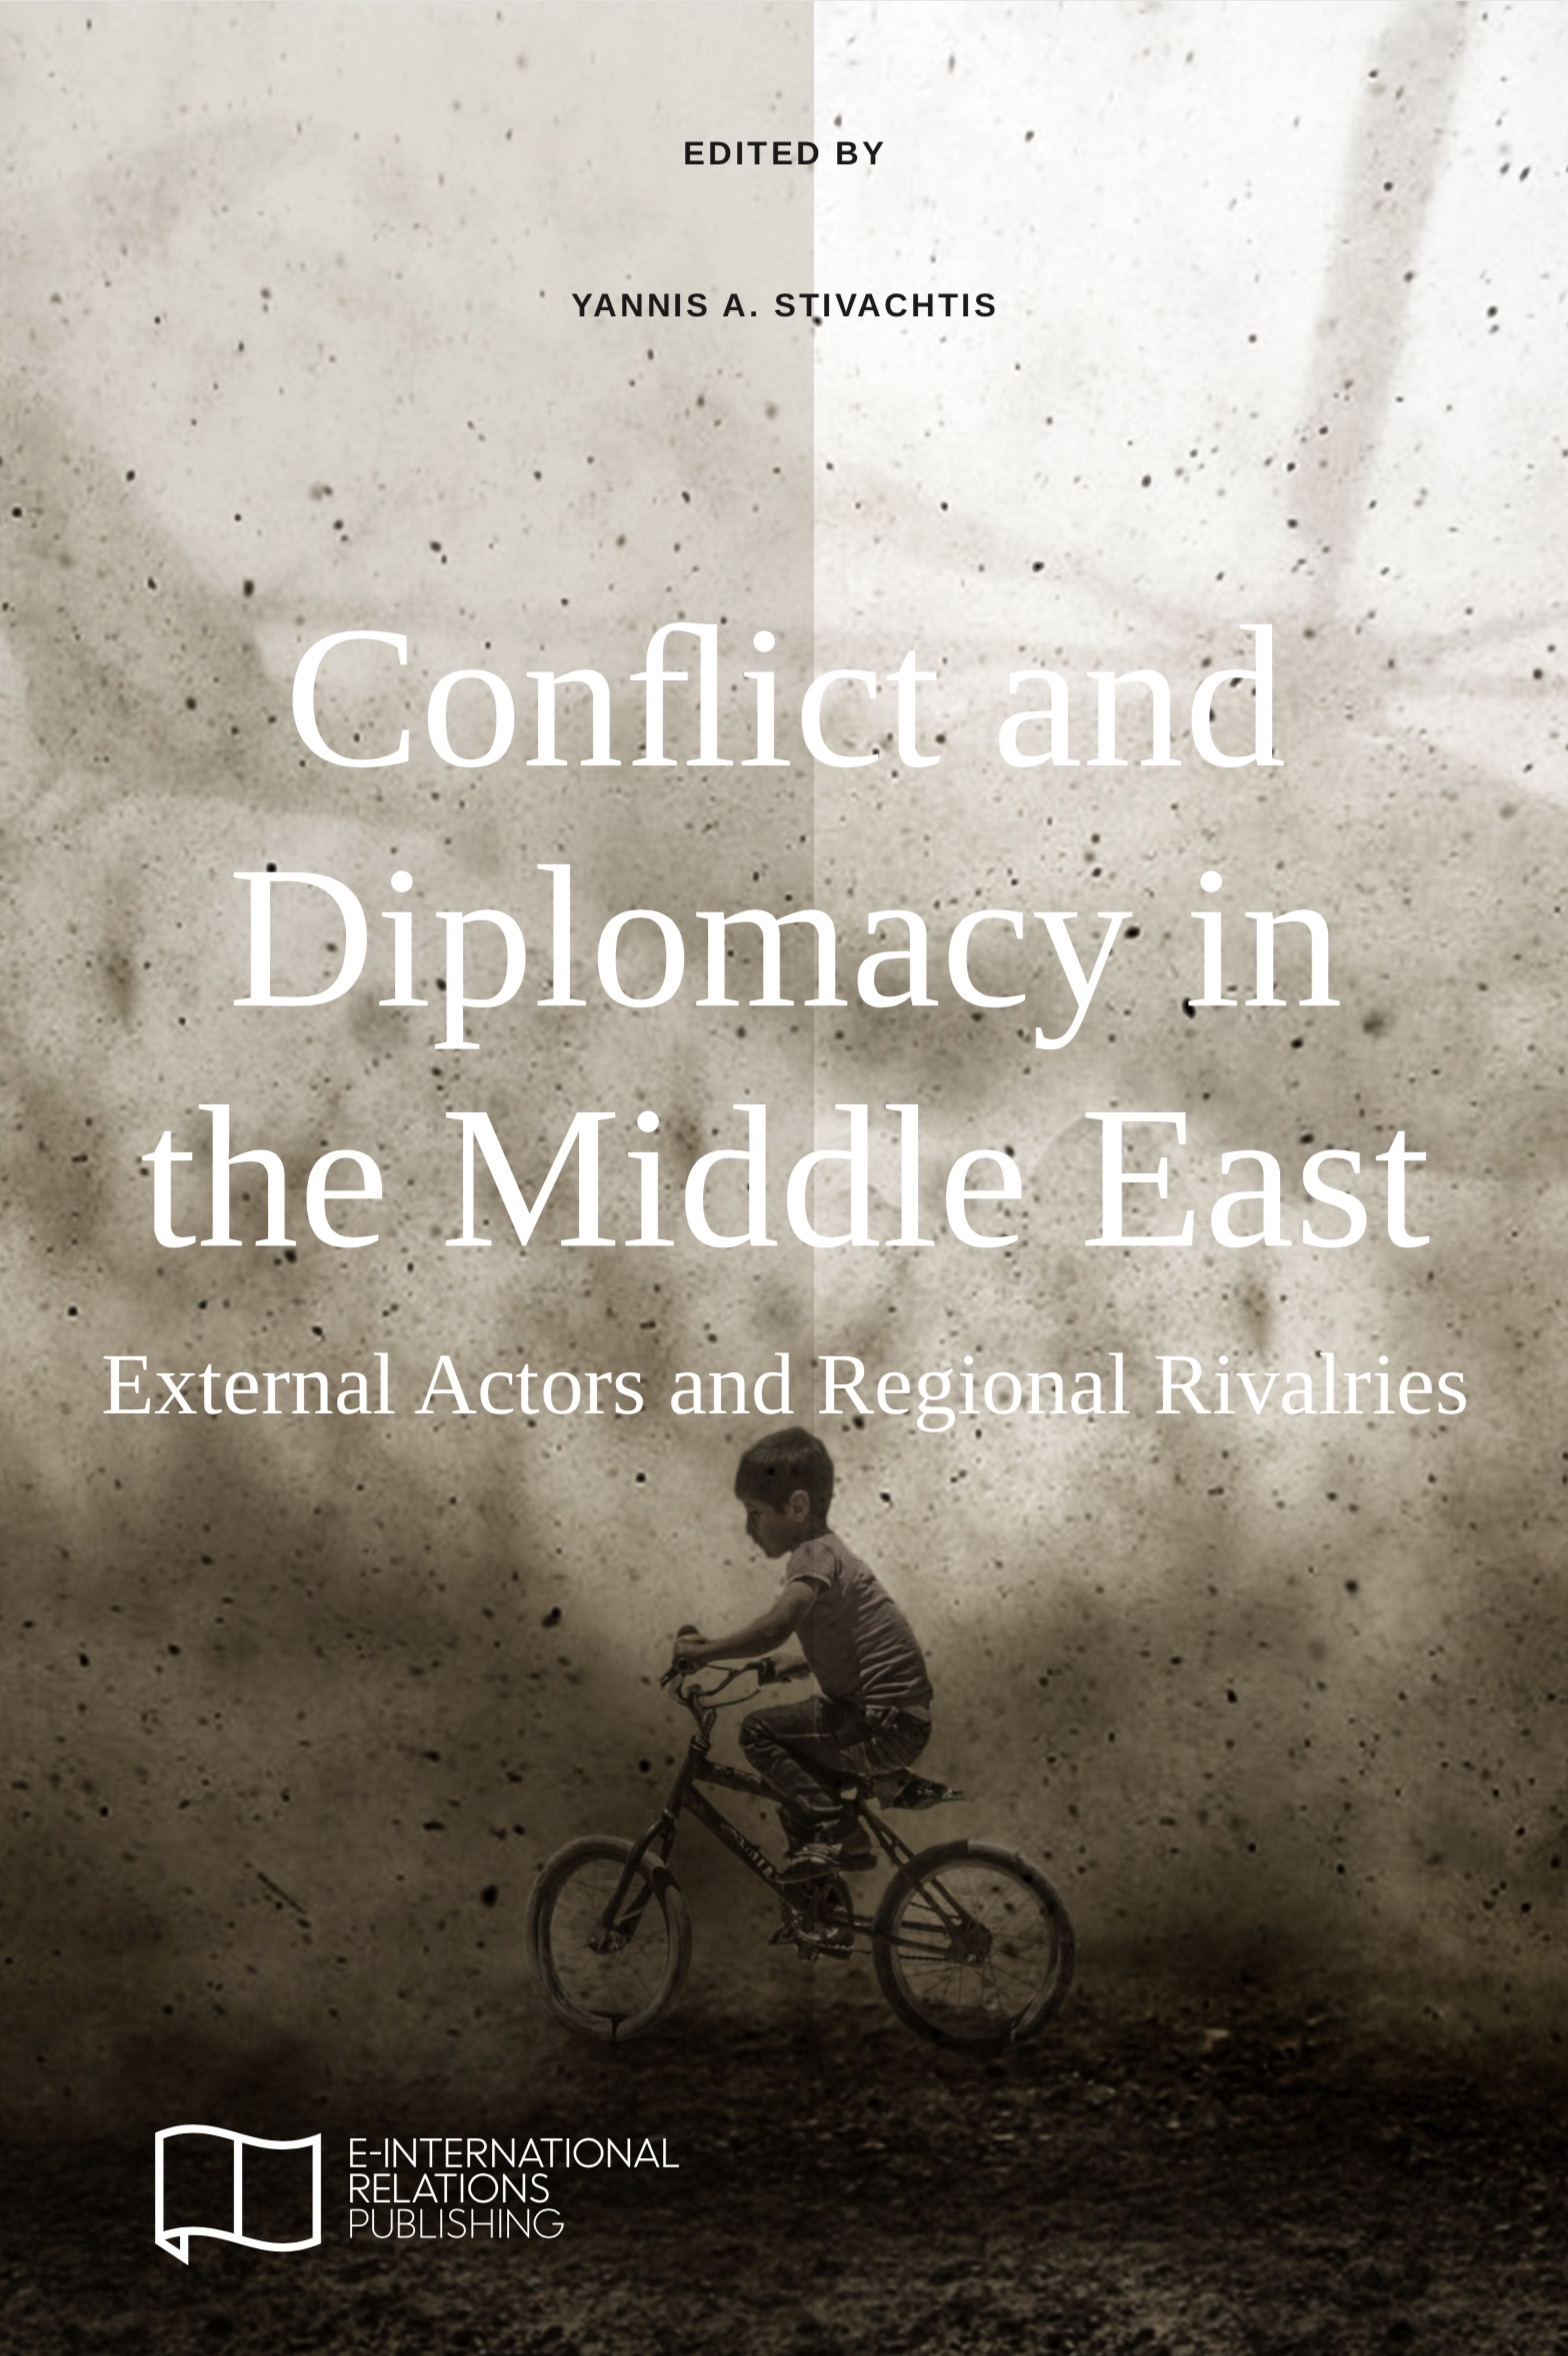 Conflict-and-diplomacy-cover.jpg